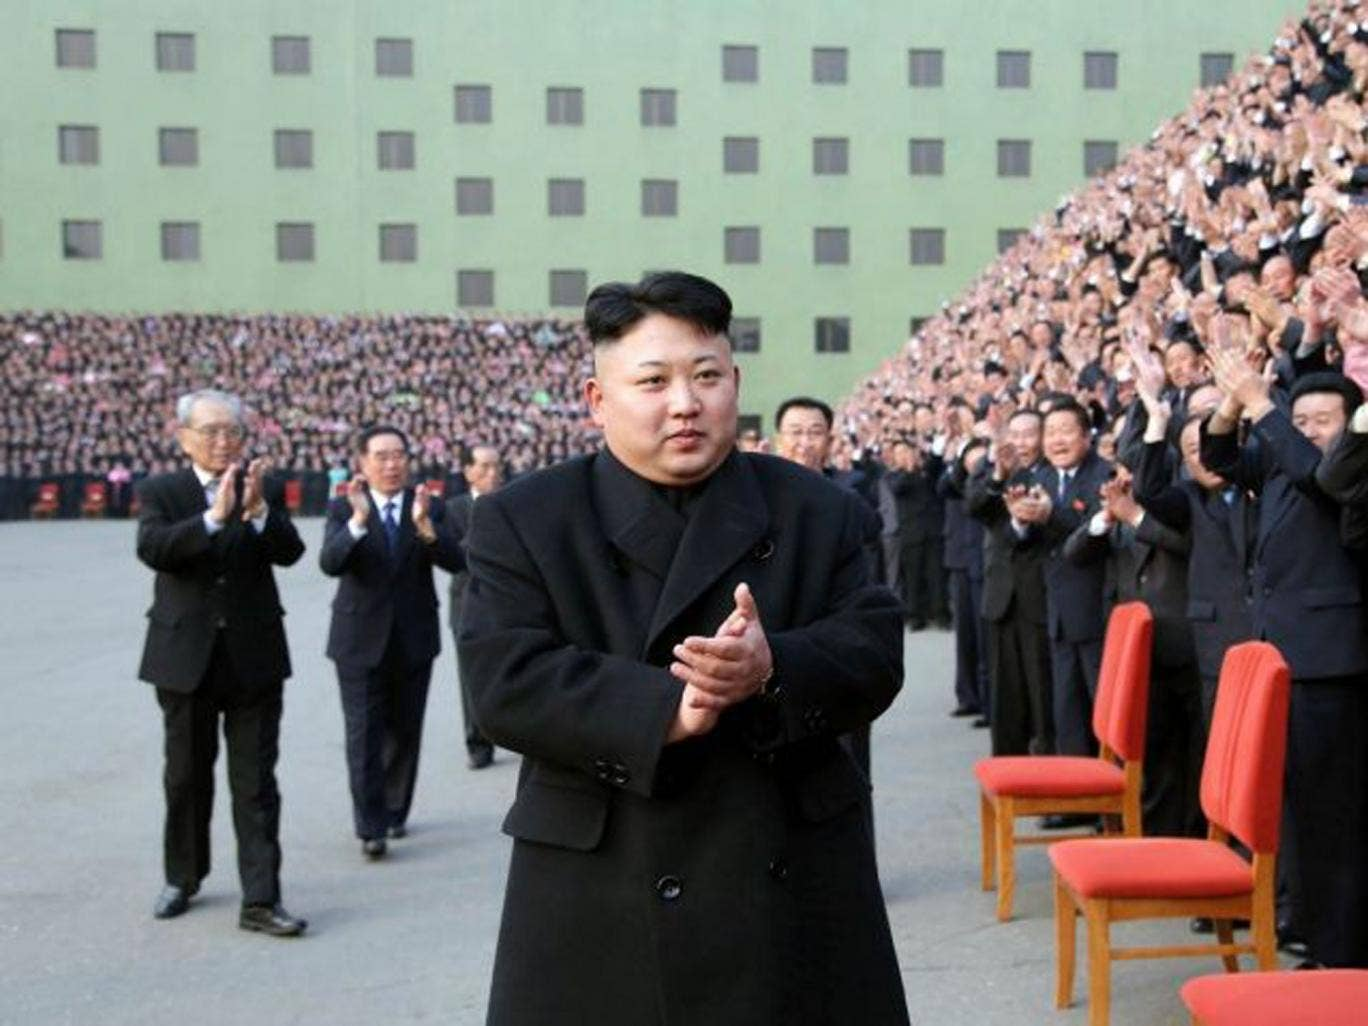 Kim Jong Un, the third in his family to rule the secretive state, is running unopposed in a legendary mountain district.